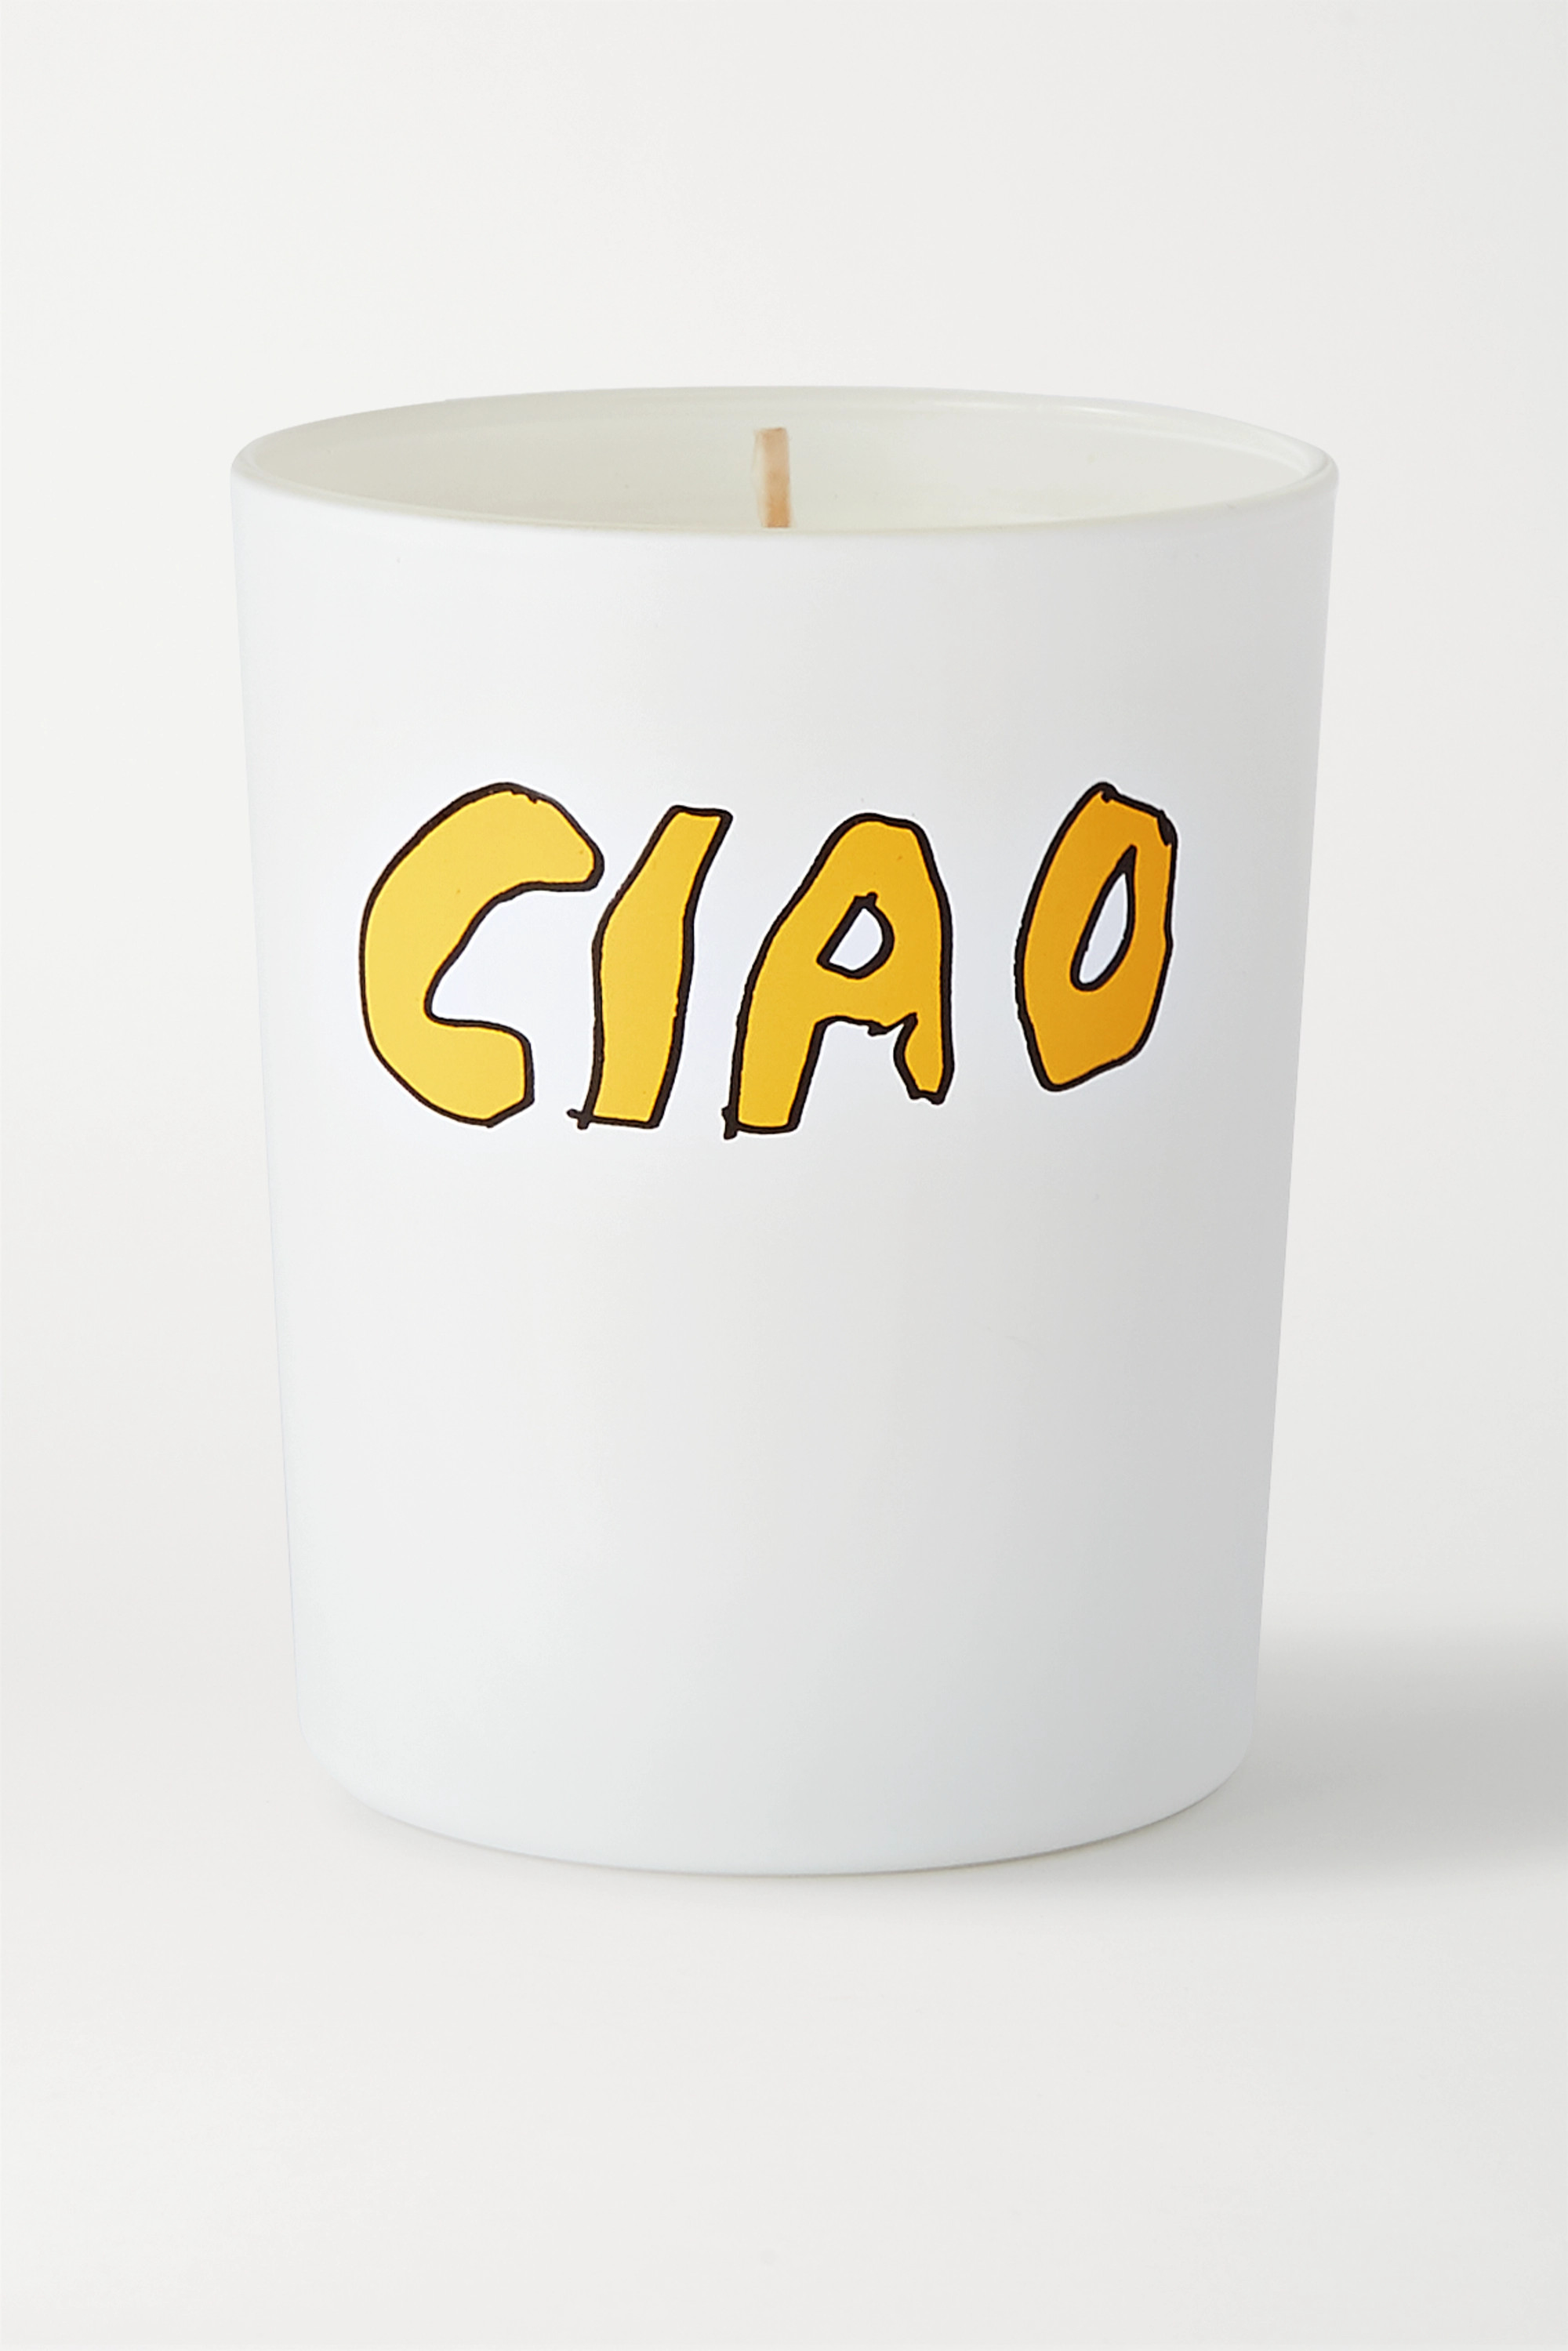 Bella Freud Parfum Ciao scented candle, 190g